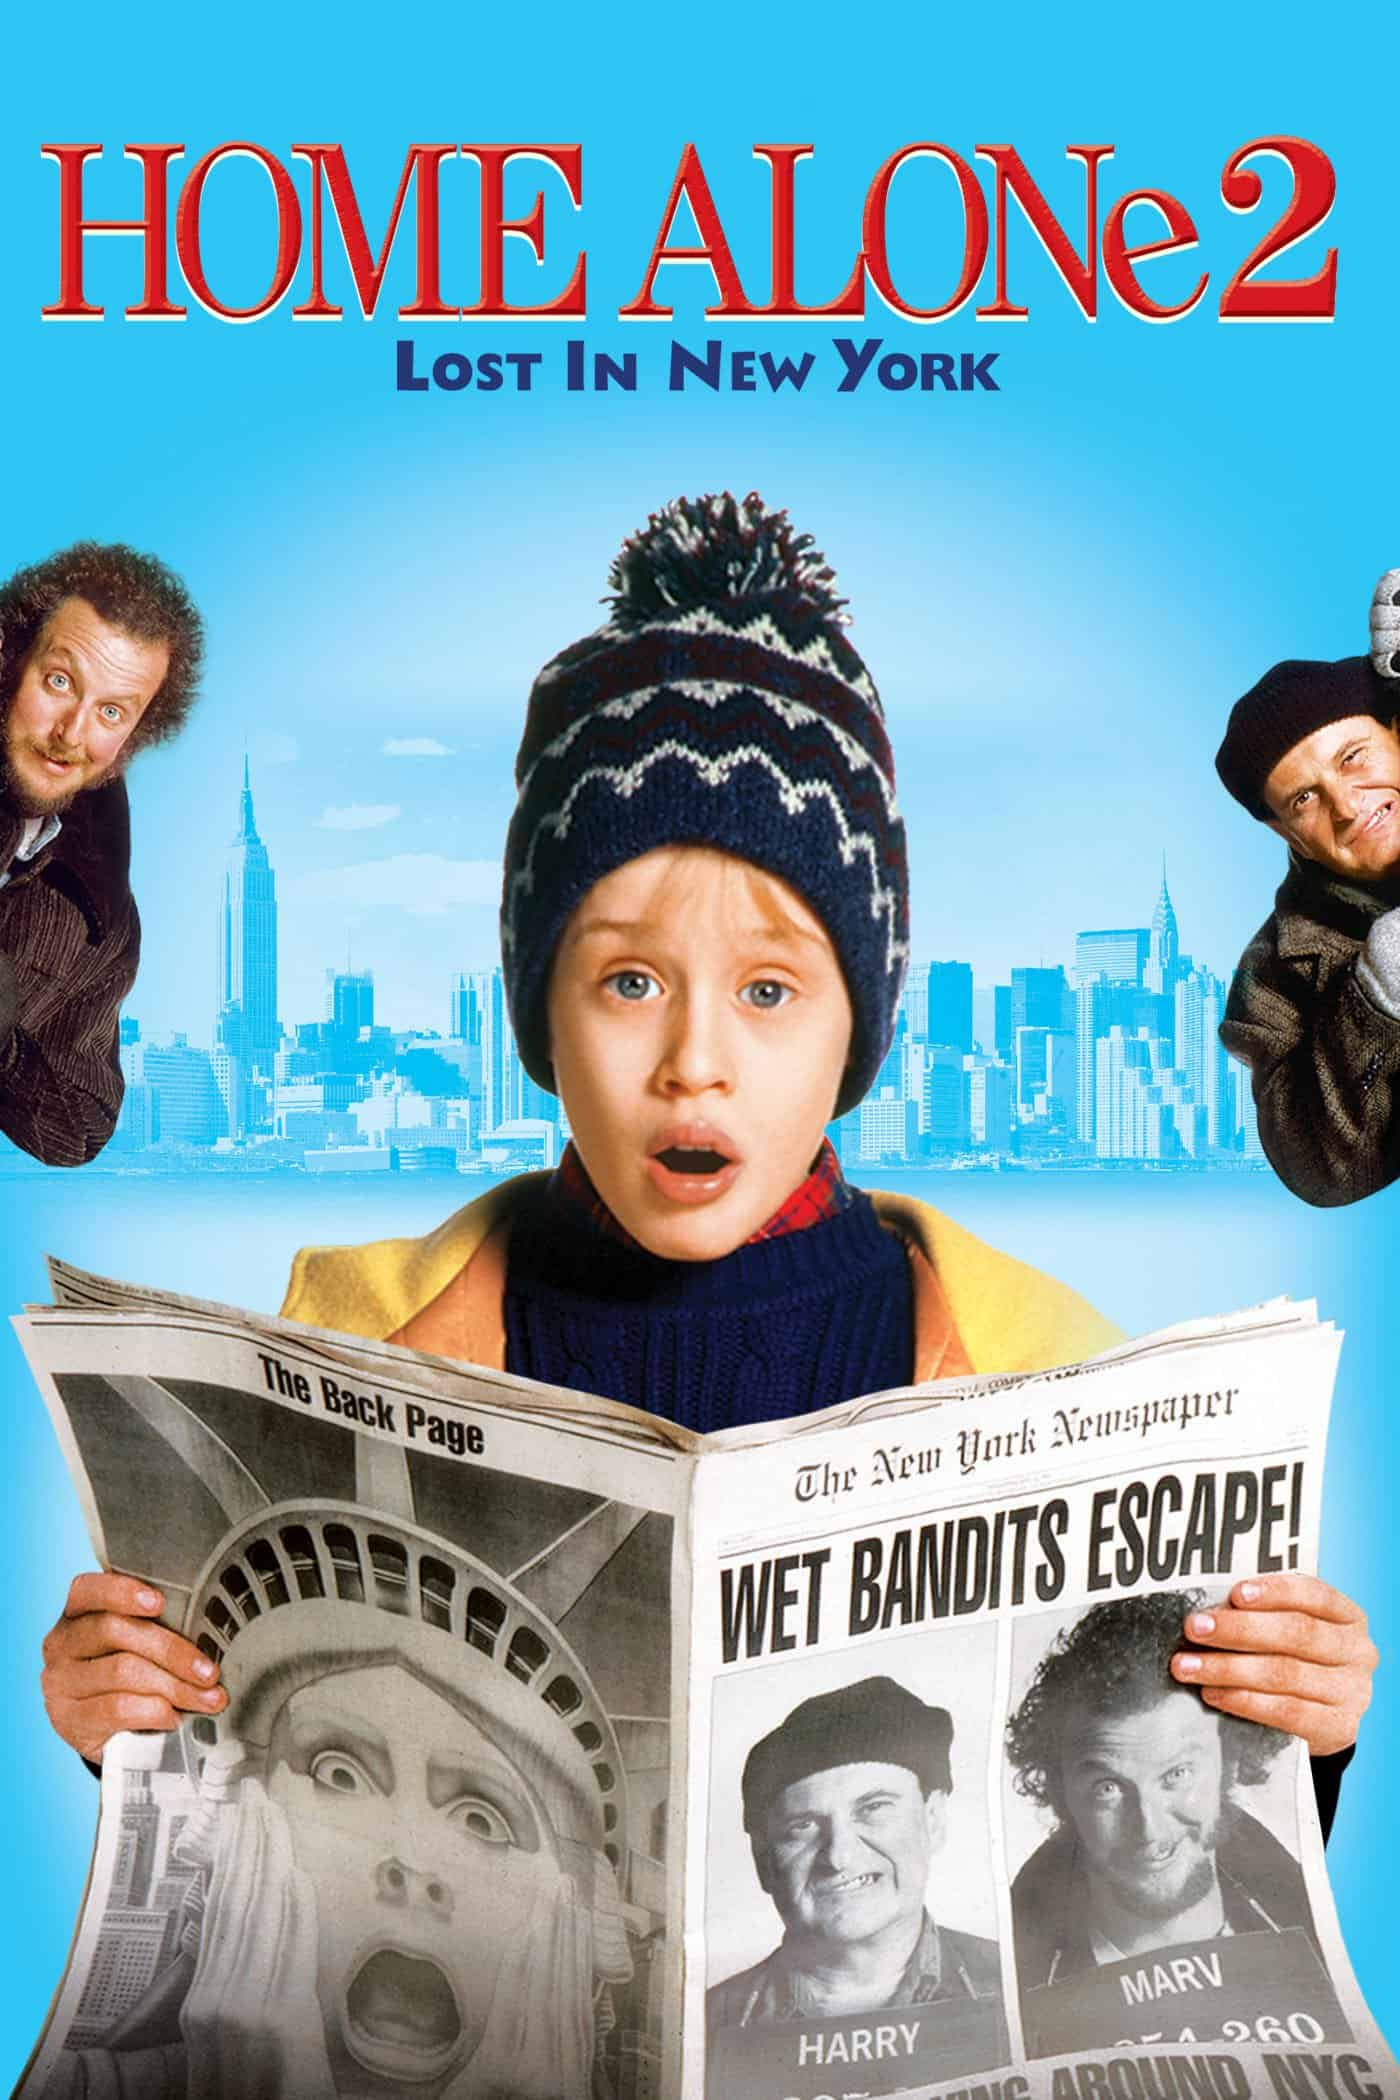 Home Alone 2: Lost in New York, 1992